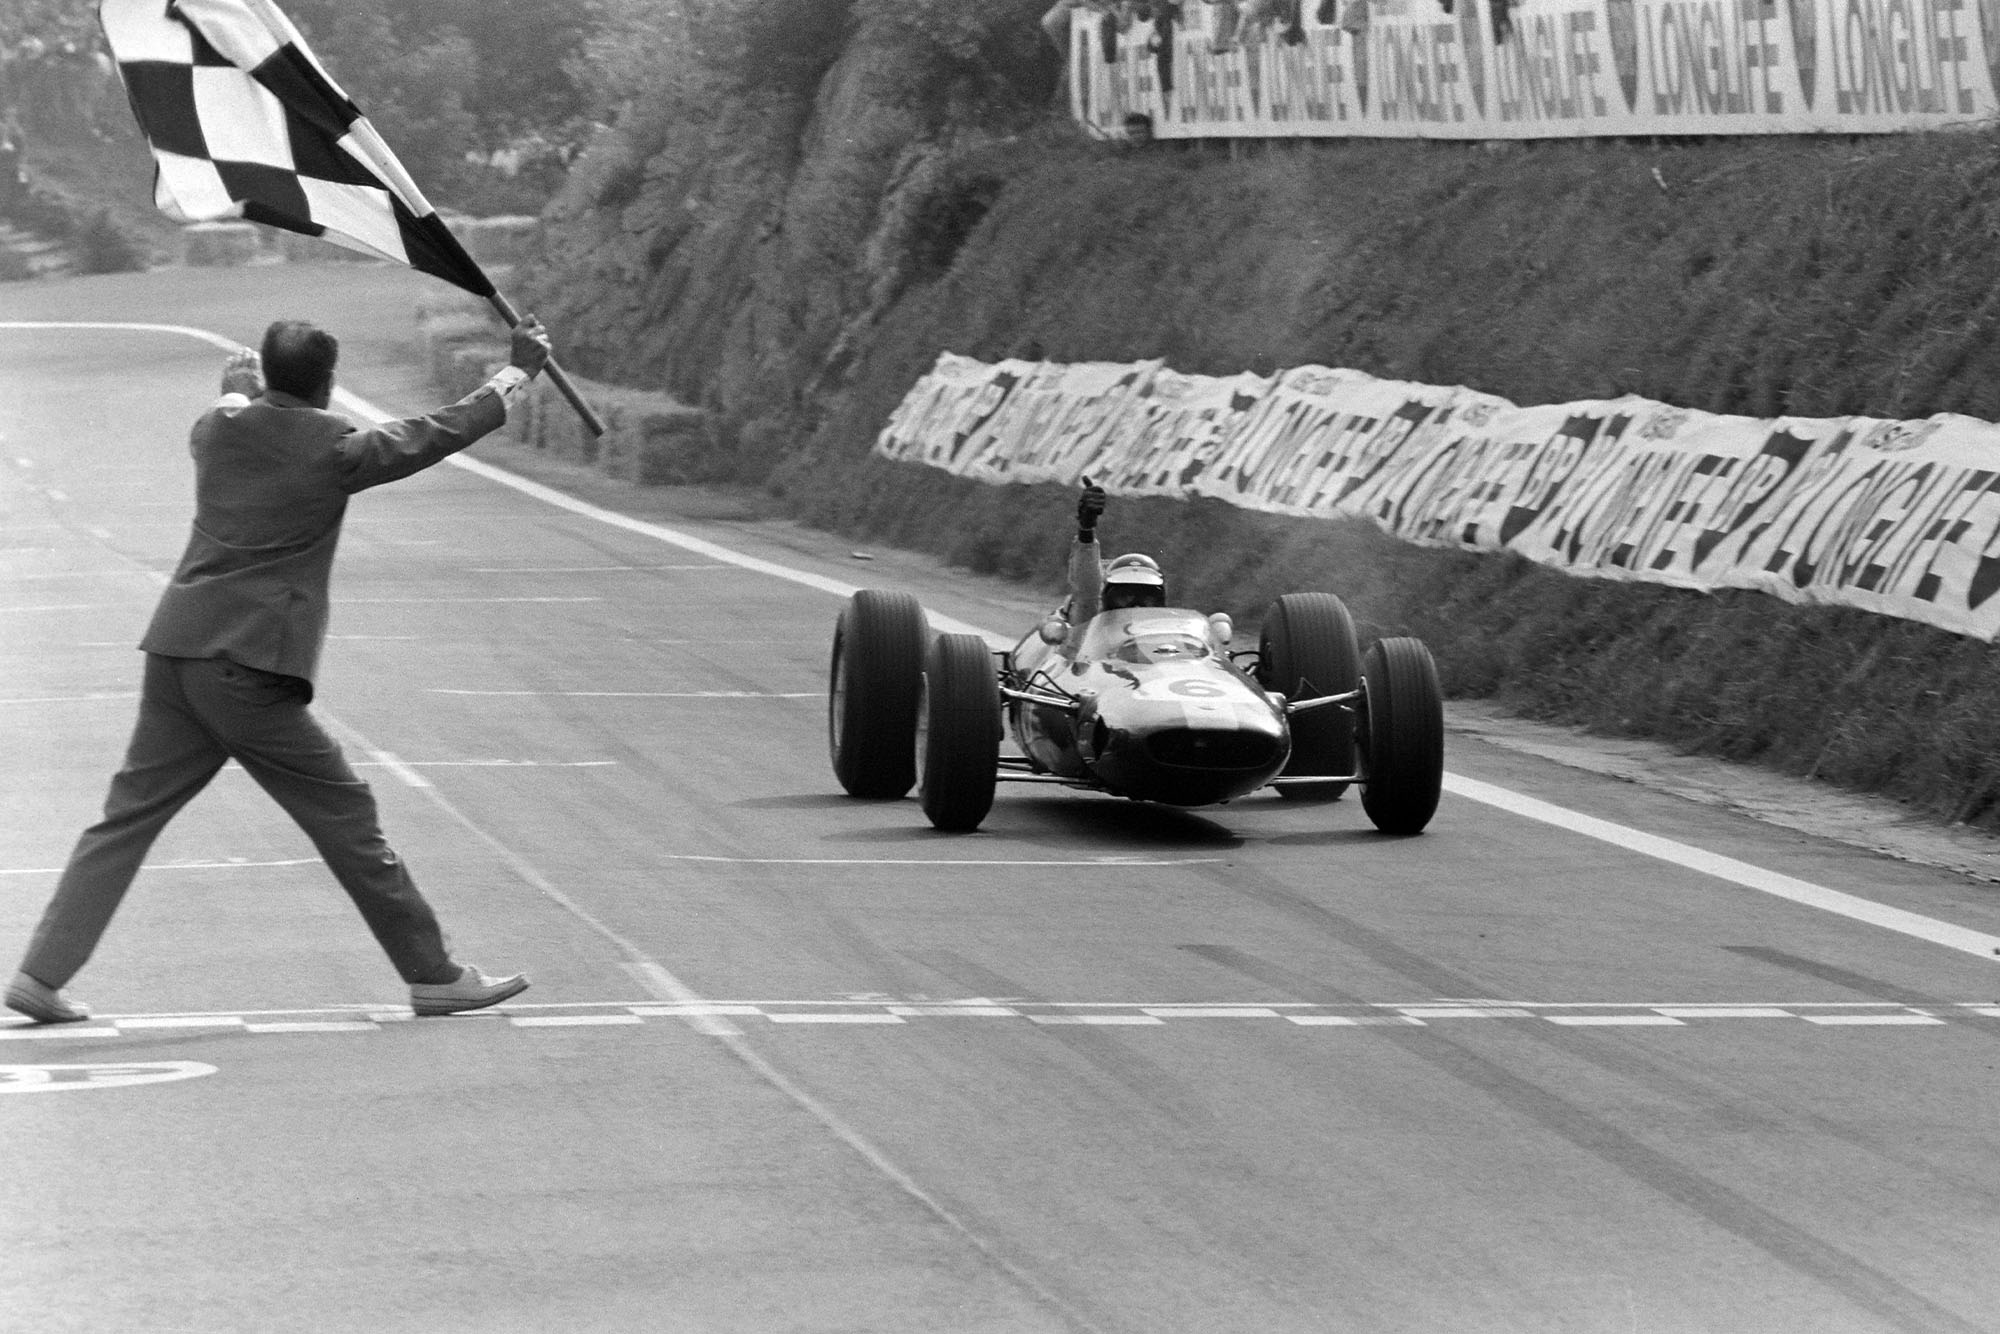 Jim Clark, Lotus 25 Climax, gives a thumbs up as he takes the chequered flag.